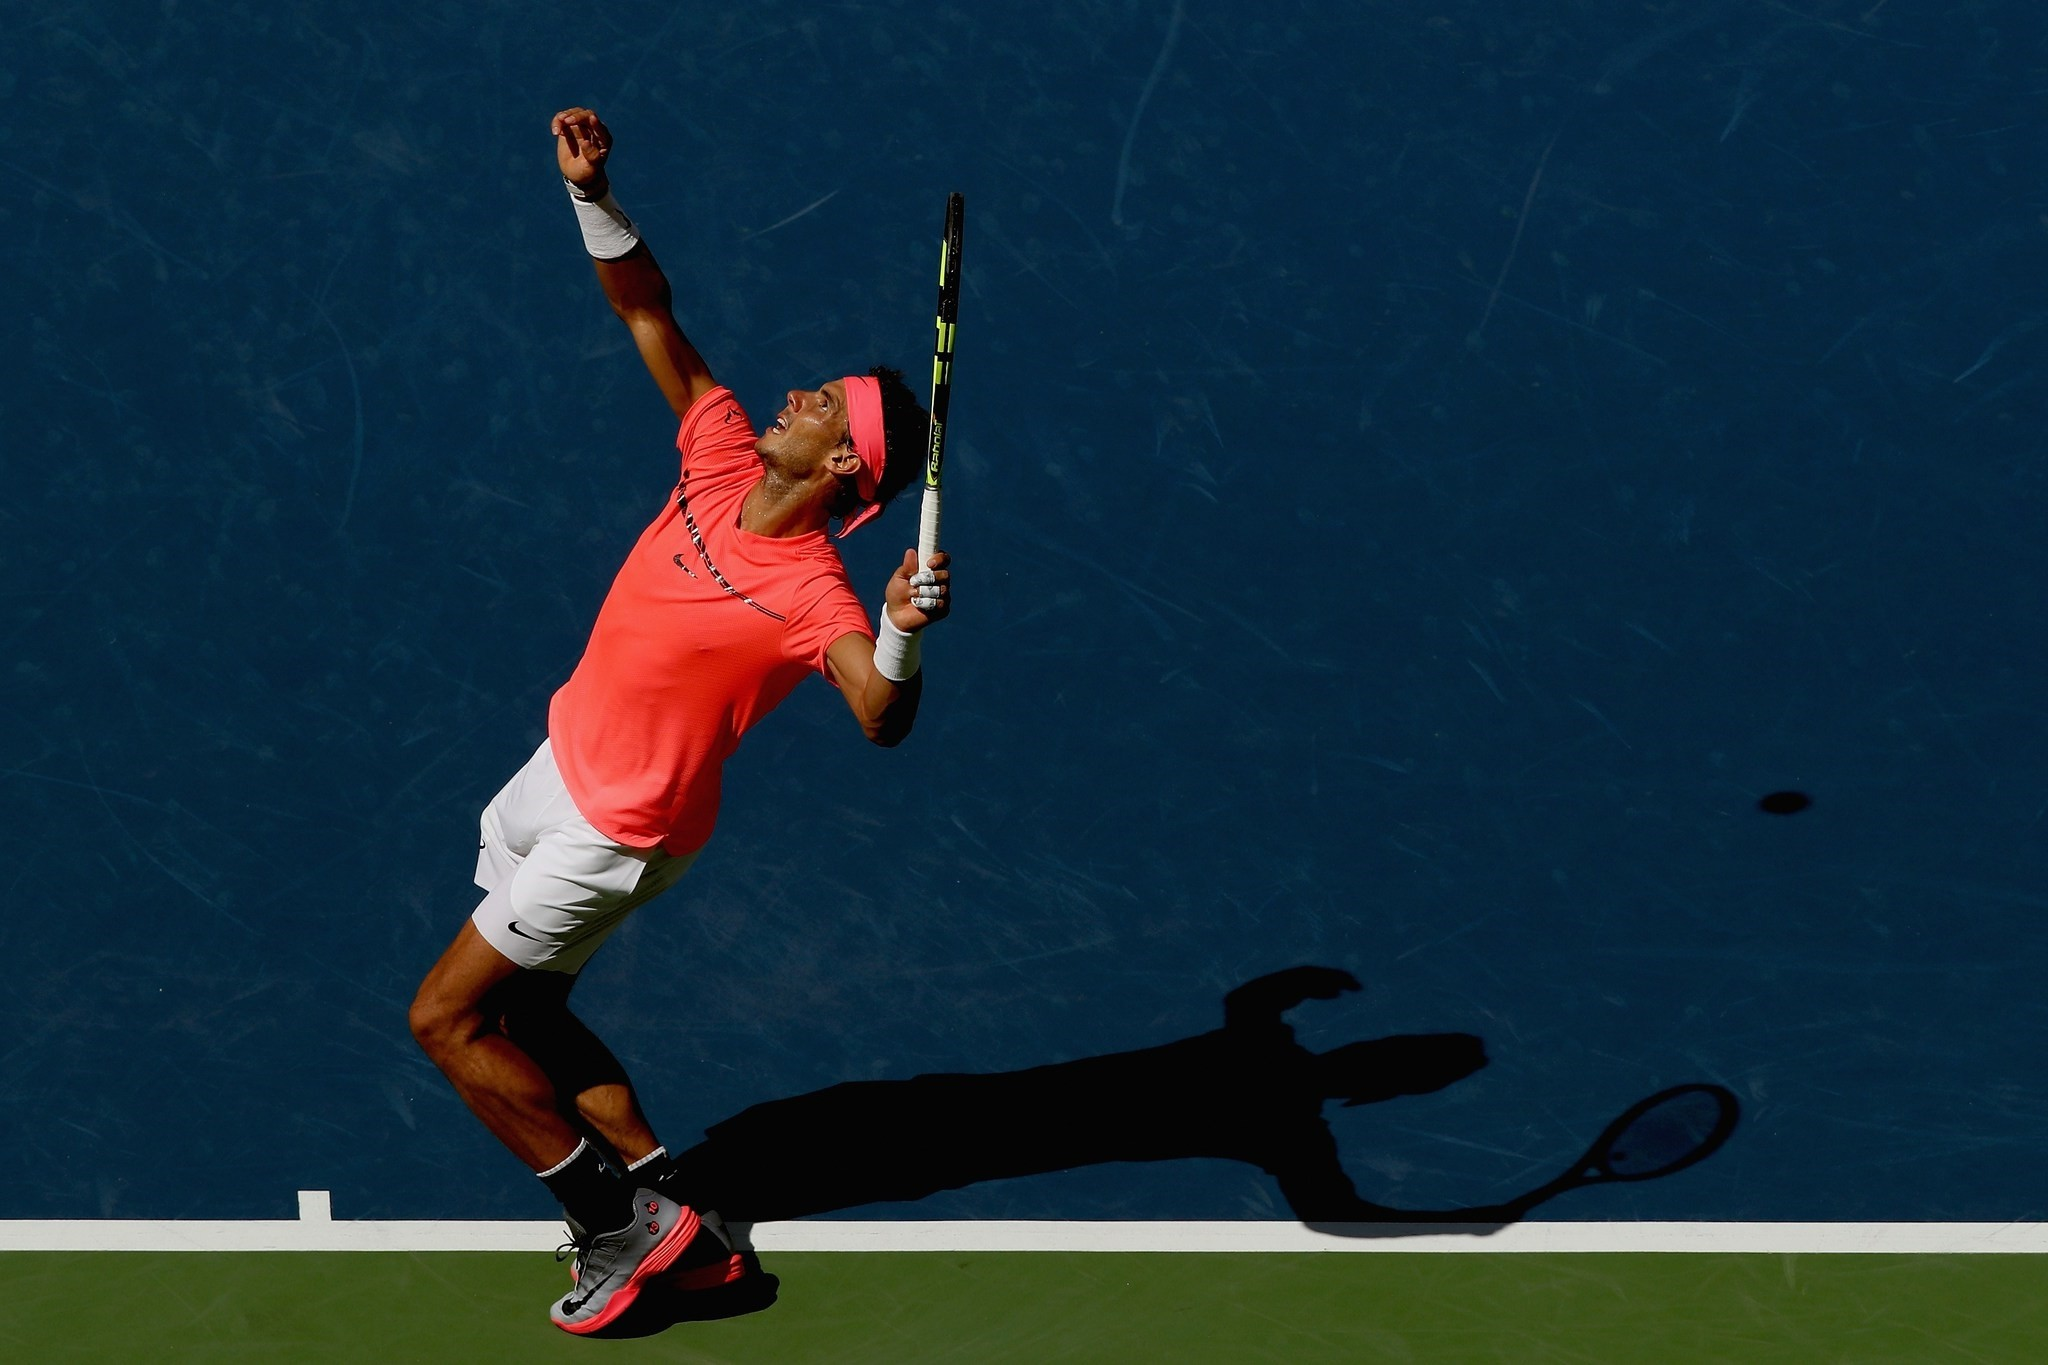 Rafael Nadal serves against Alexandr Dolgopolov of Ukraine during their fourth round Menu2019s Singles match on Day Eight of the 2017 US Open at the USTA Billie Jean King National Tennis Center.